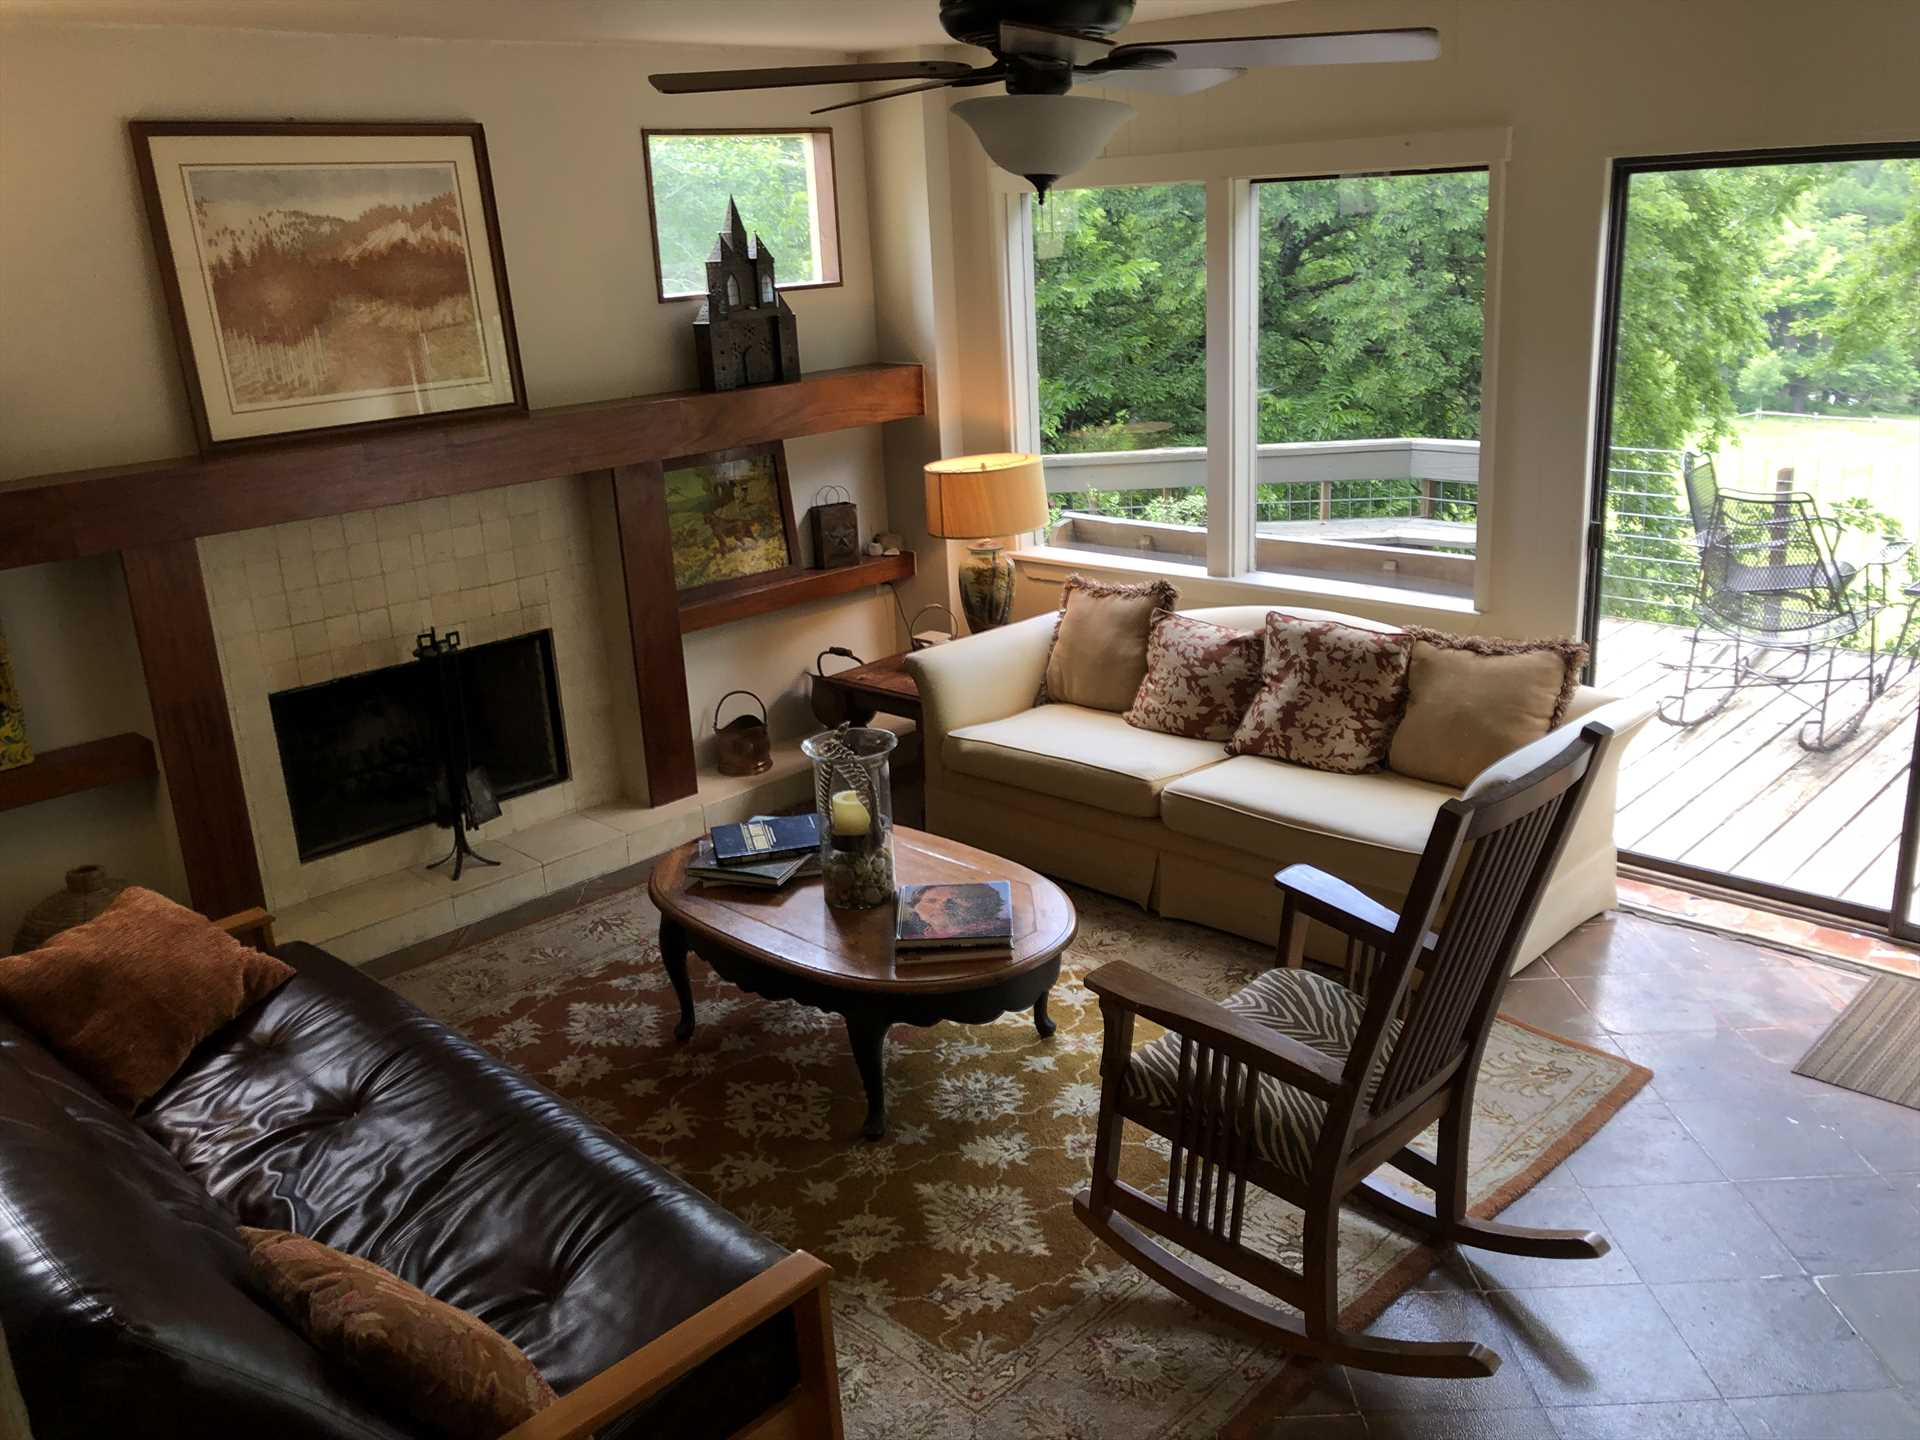 The second living area opens out onto the spacious deck, and the big windows and doors invite in plenty of natural light and inspiring views!!